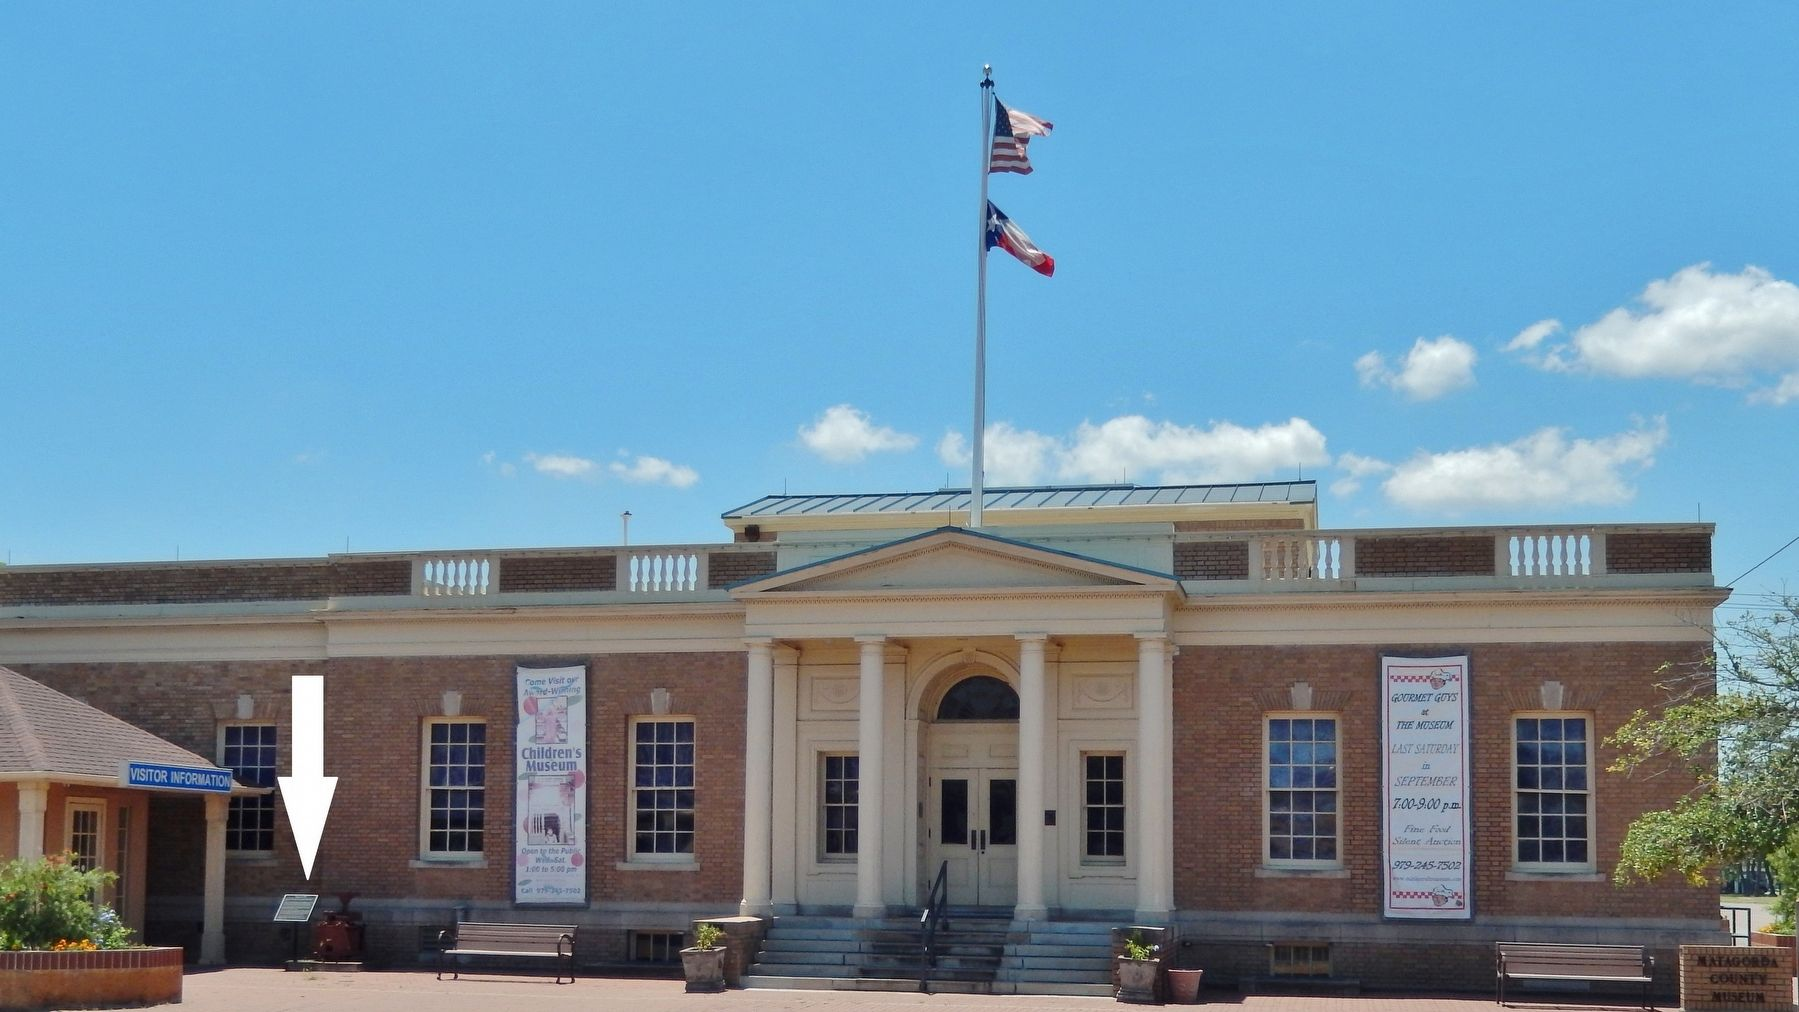 Matagorda County Musuem (former U.S. Post Office) (<i>marker visible at left</i>) image. Click for full size.